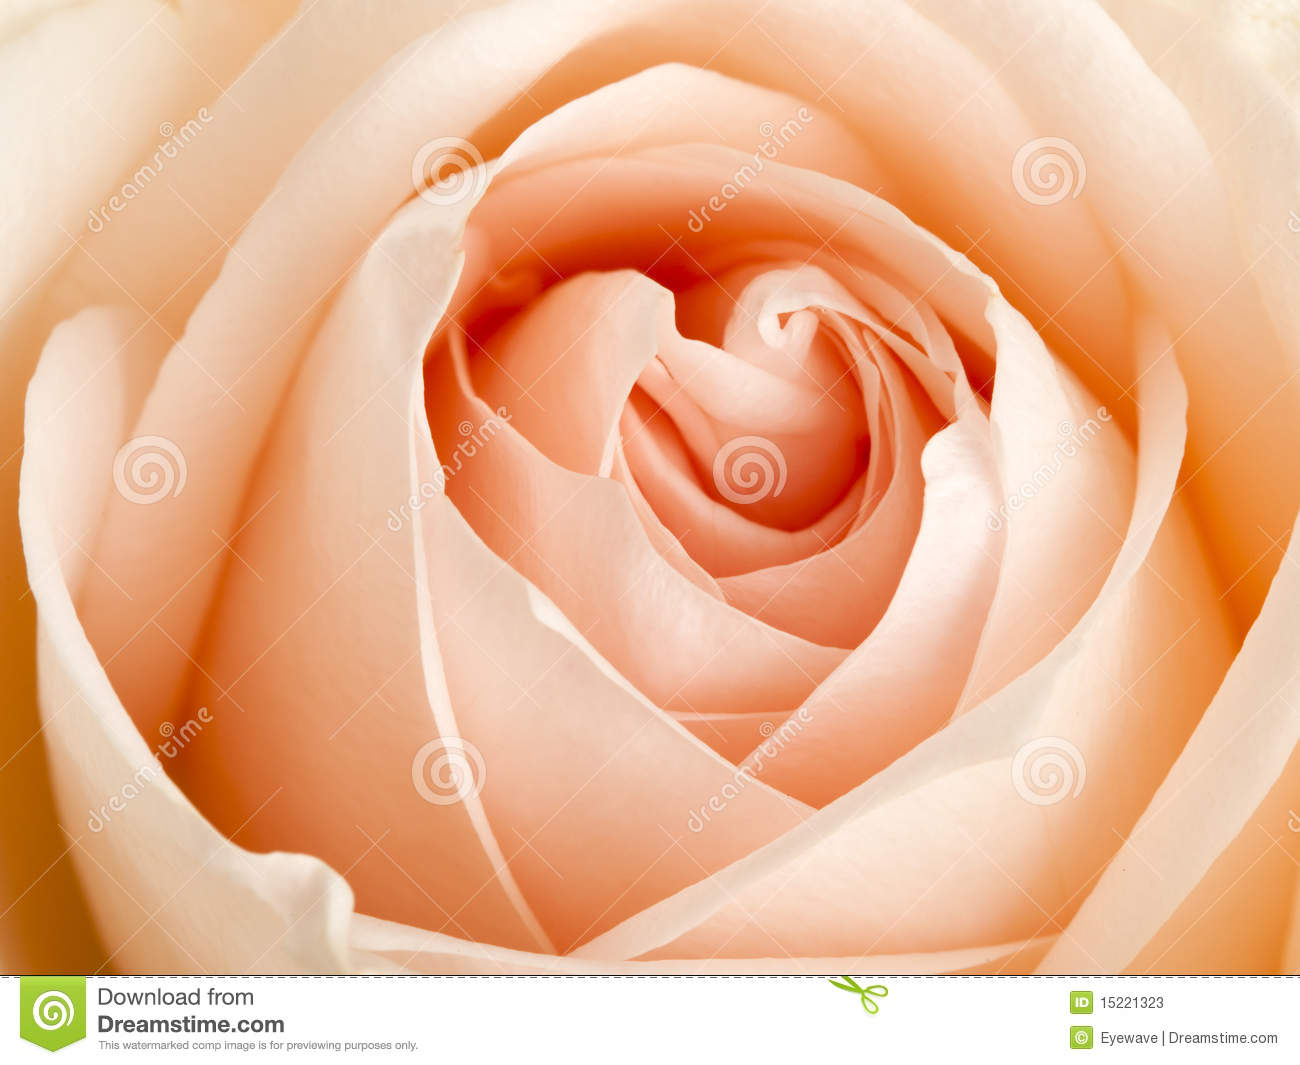 Apricot Colored Rose Close Up Stock Photos - Image: 15221323